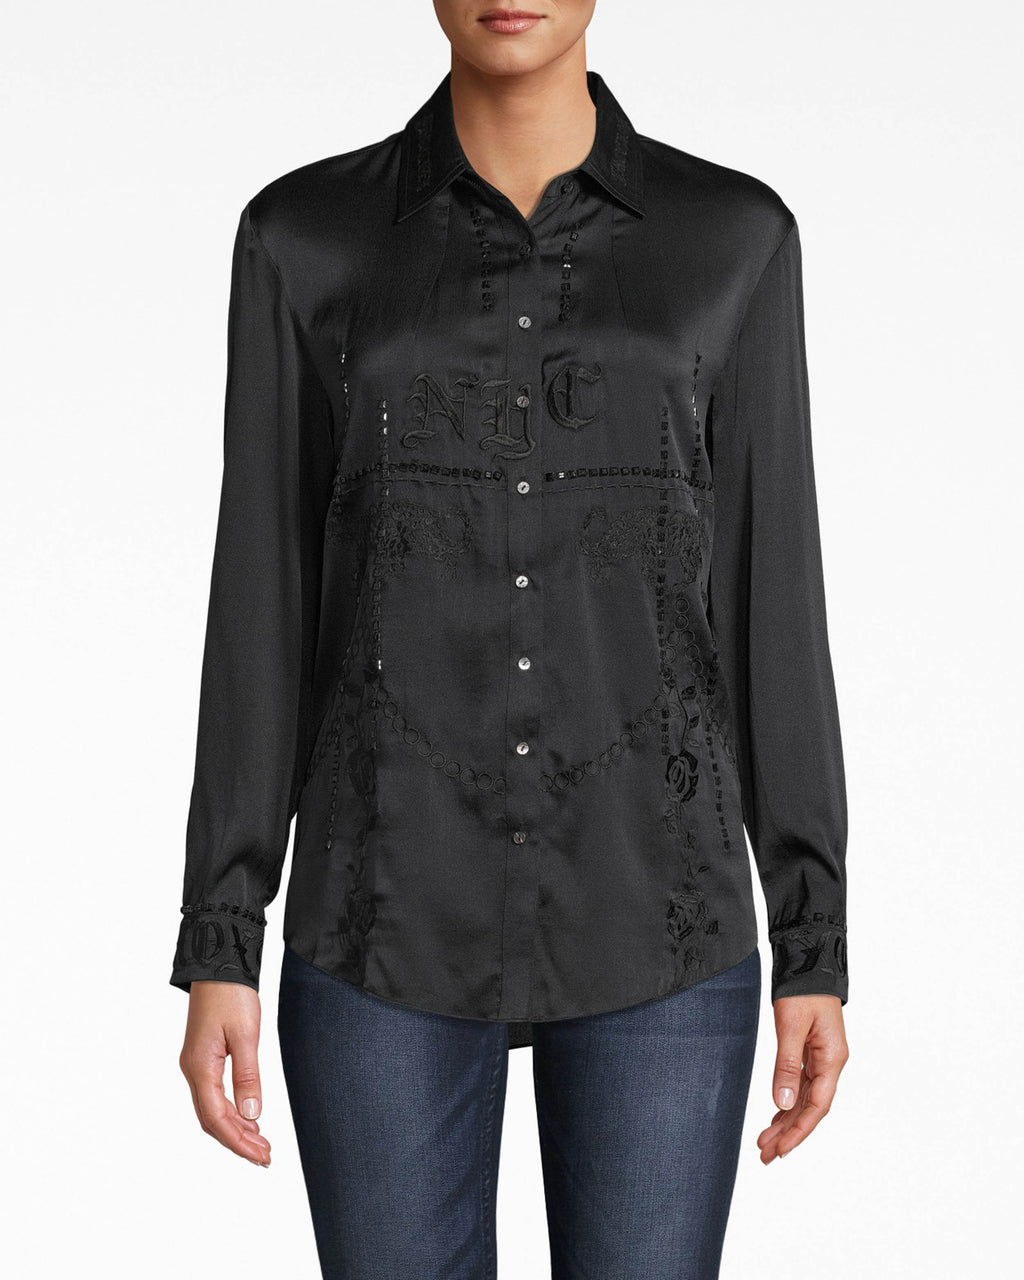 CA20072 - STRETCH CHARMEUSE EMBROIDERED BOYFRIEND SHIRT - tops - shirts - Grab this stretch charmeuse boyfriend shirt and go. Look twice and you'll catch the intricate beading and embroidery. It's all in the details.